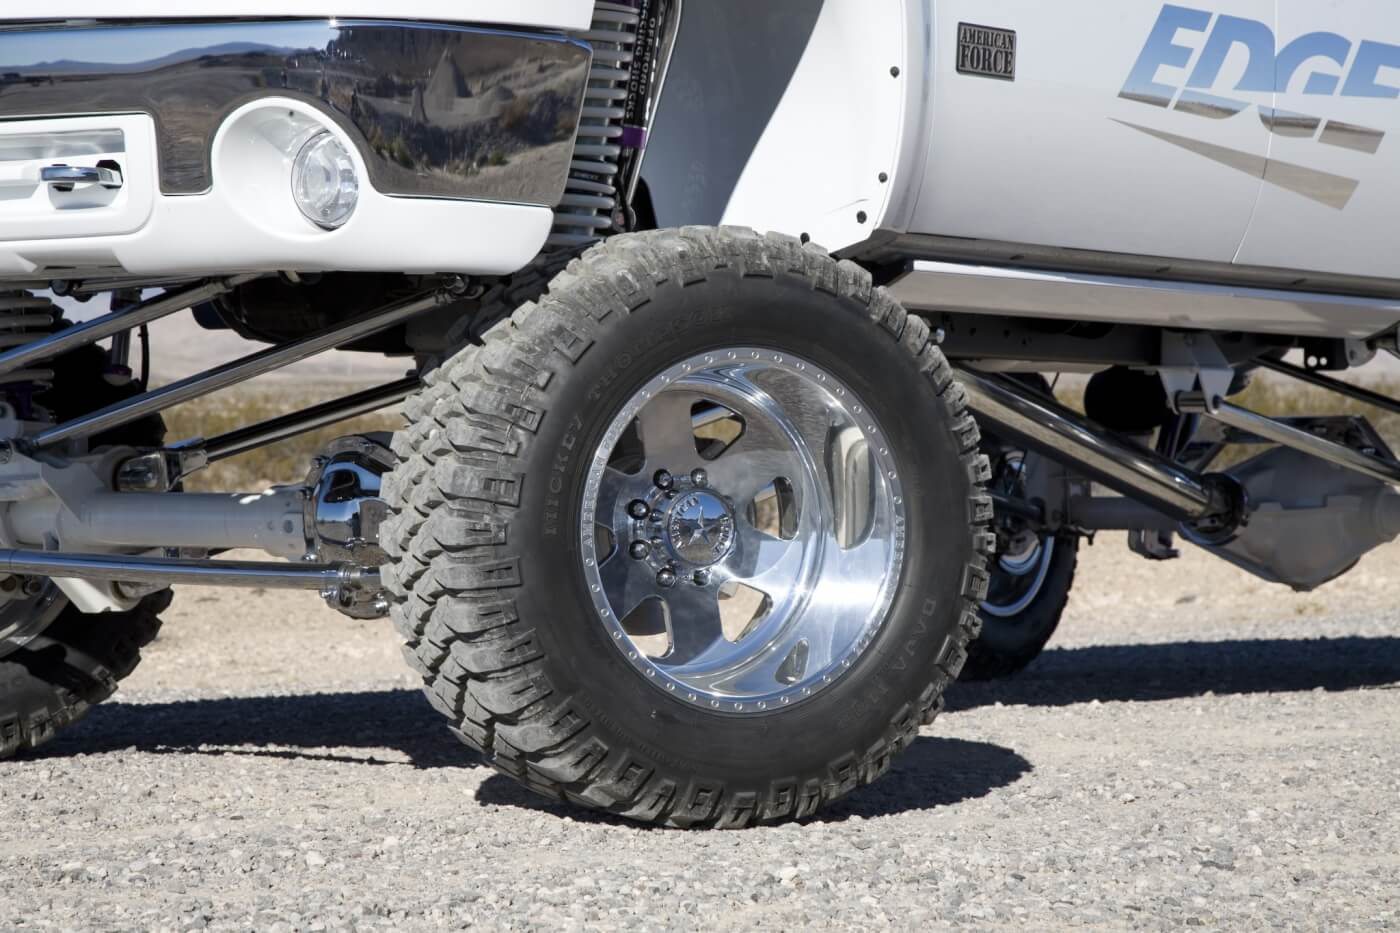 This GMC rolls on a set of Mickey Thompson 36x15.5x20 MZT tires mounted on 22x14 American Force Judge SS8 polished wheels